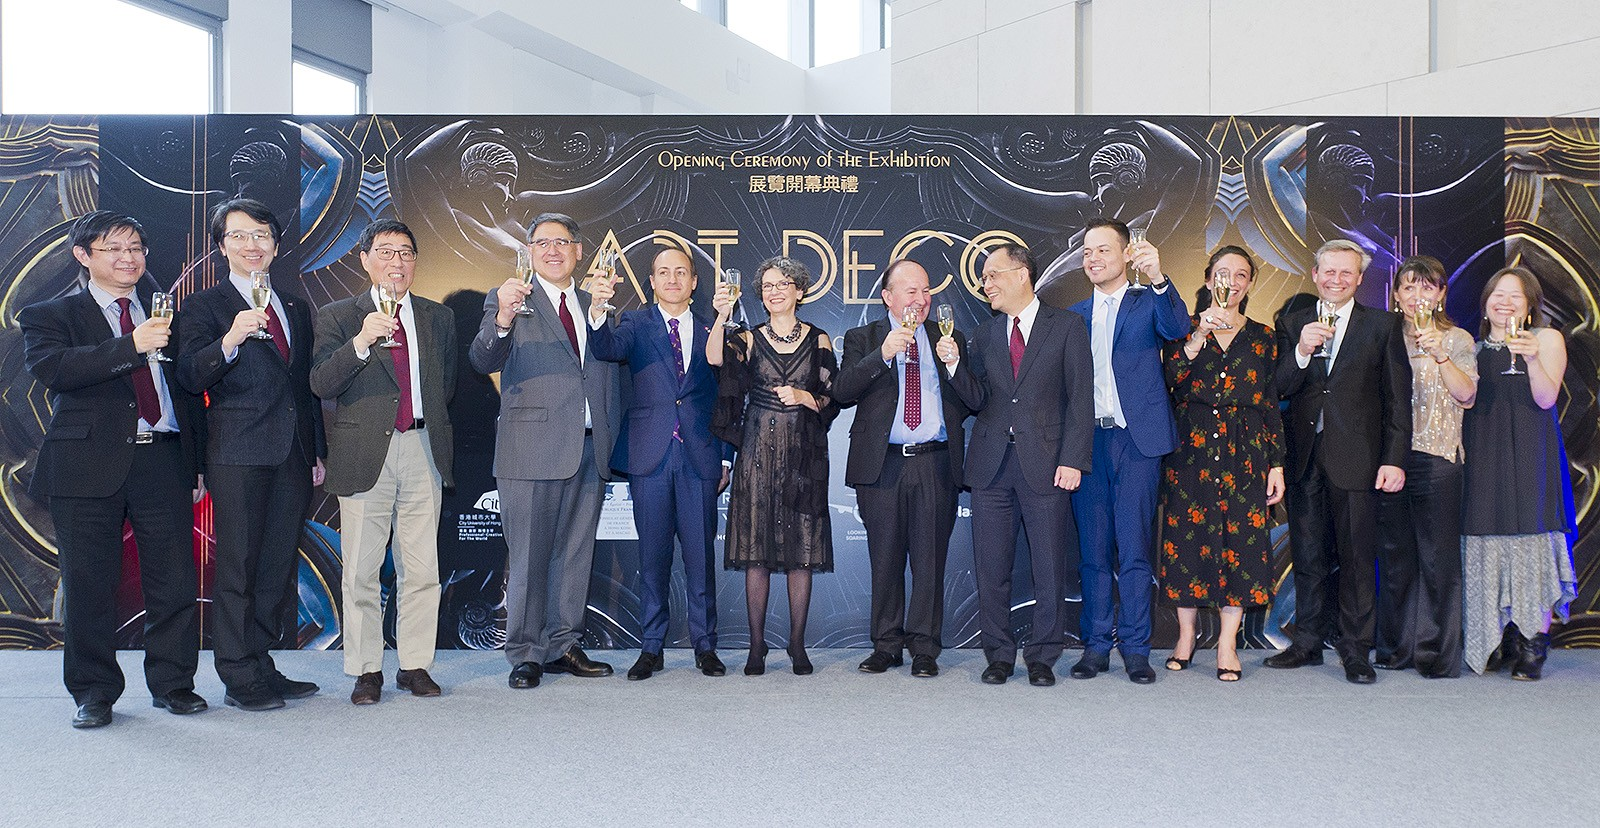 (Starting from third from left) President Kuo, Mr Huang, Mr Giorgini, Dr Frank, Mr Bréon and guests toast at the opening ceremony.